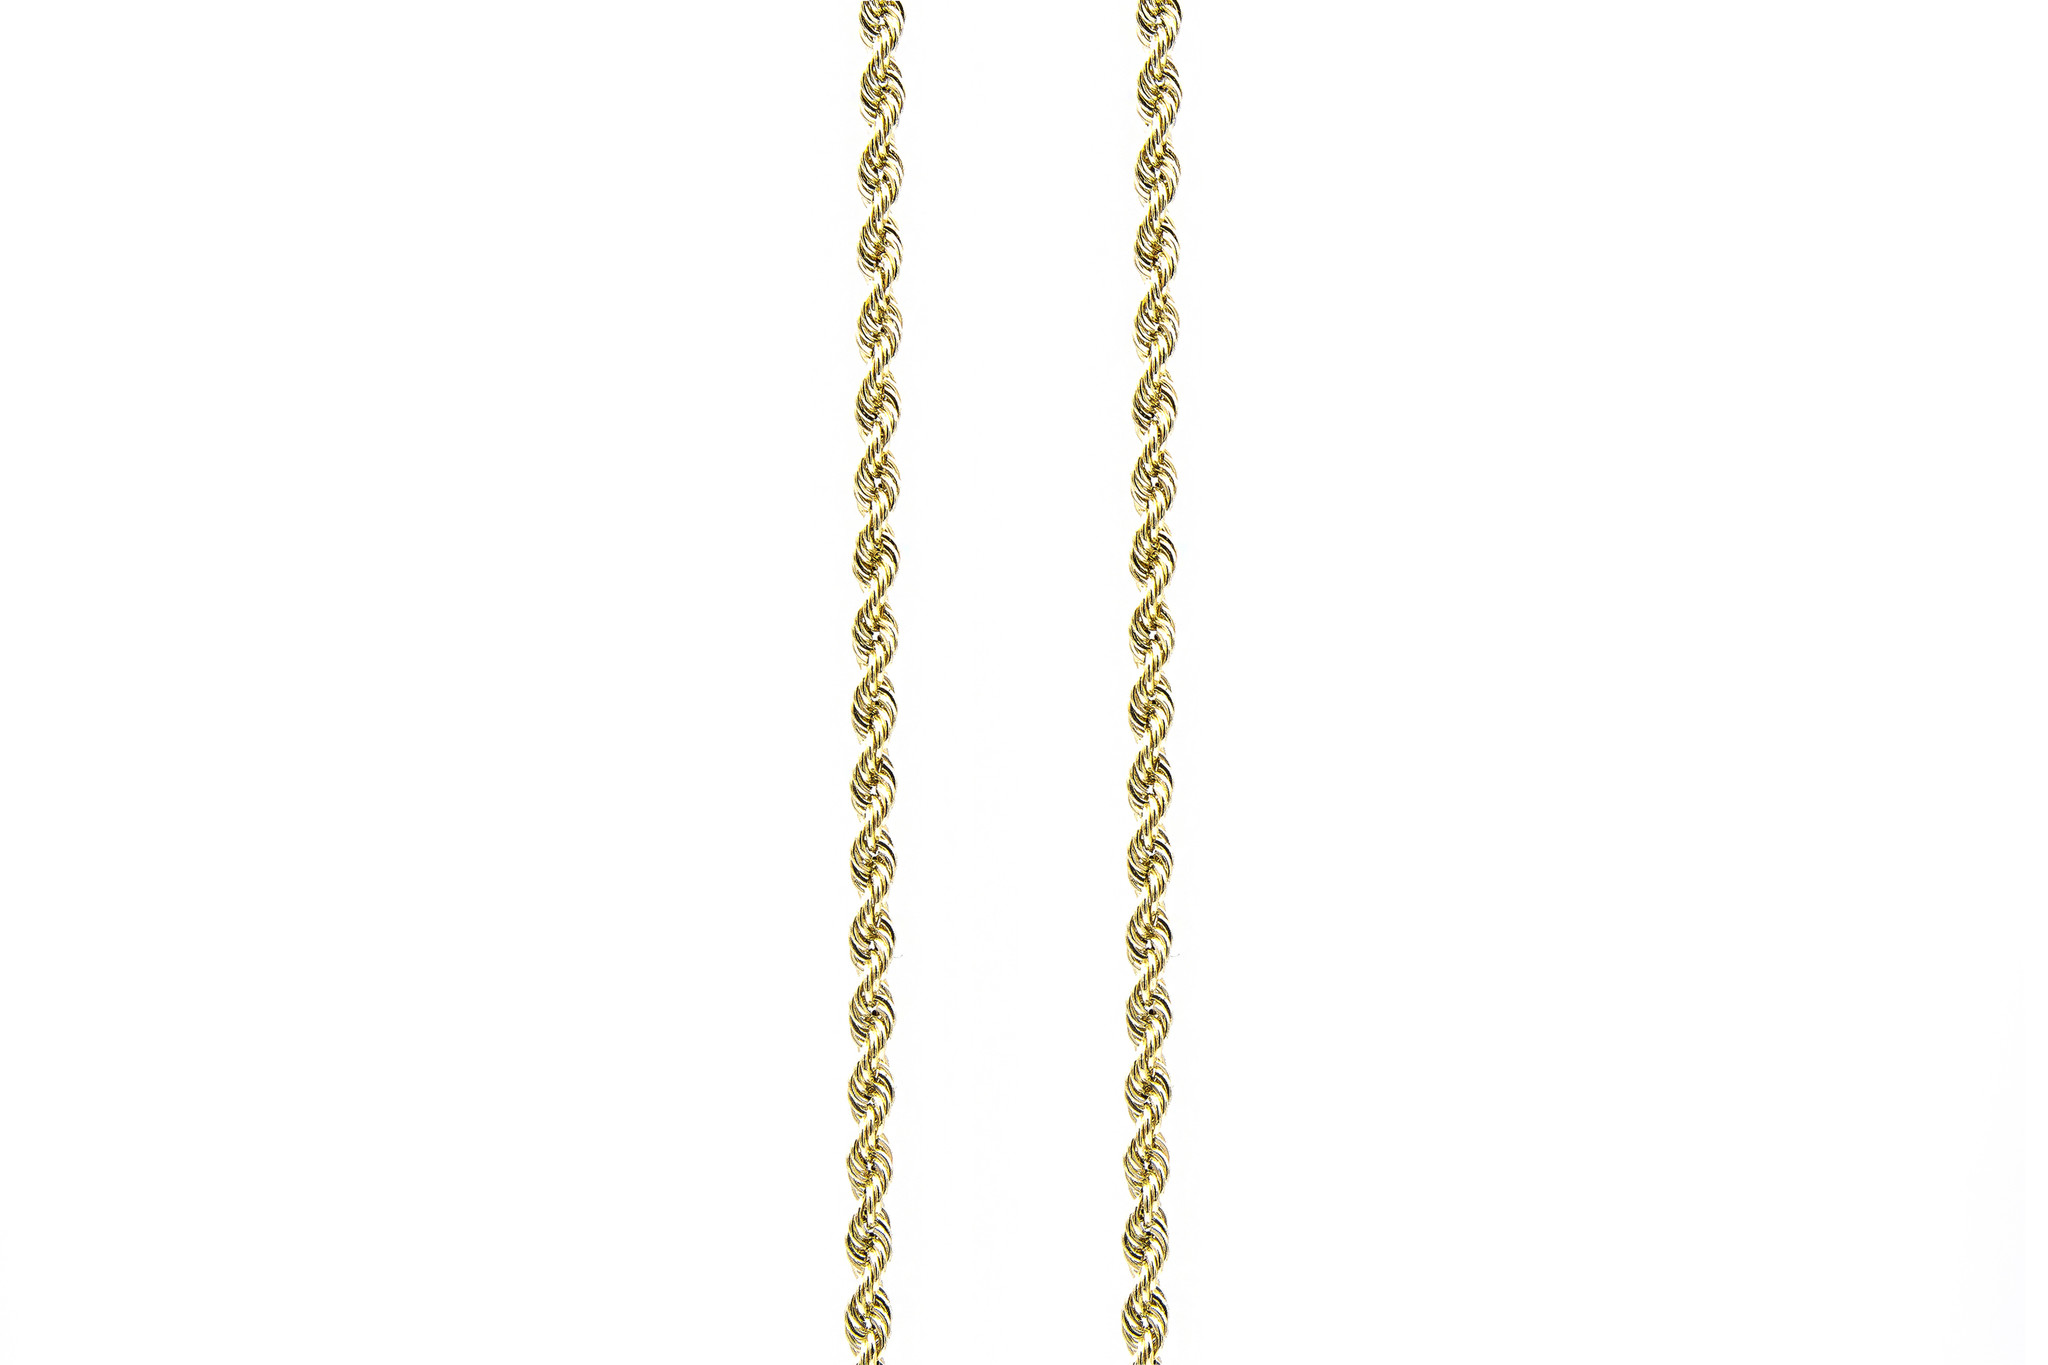 Rope Chain 14k - 3,5 mm-1